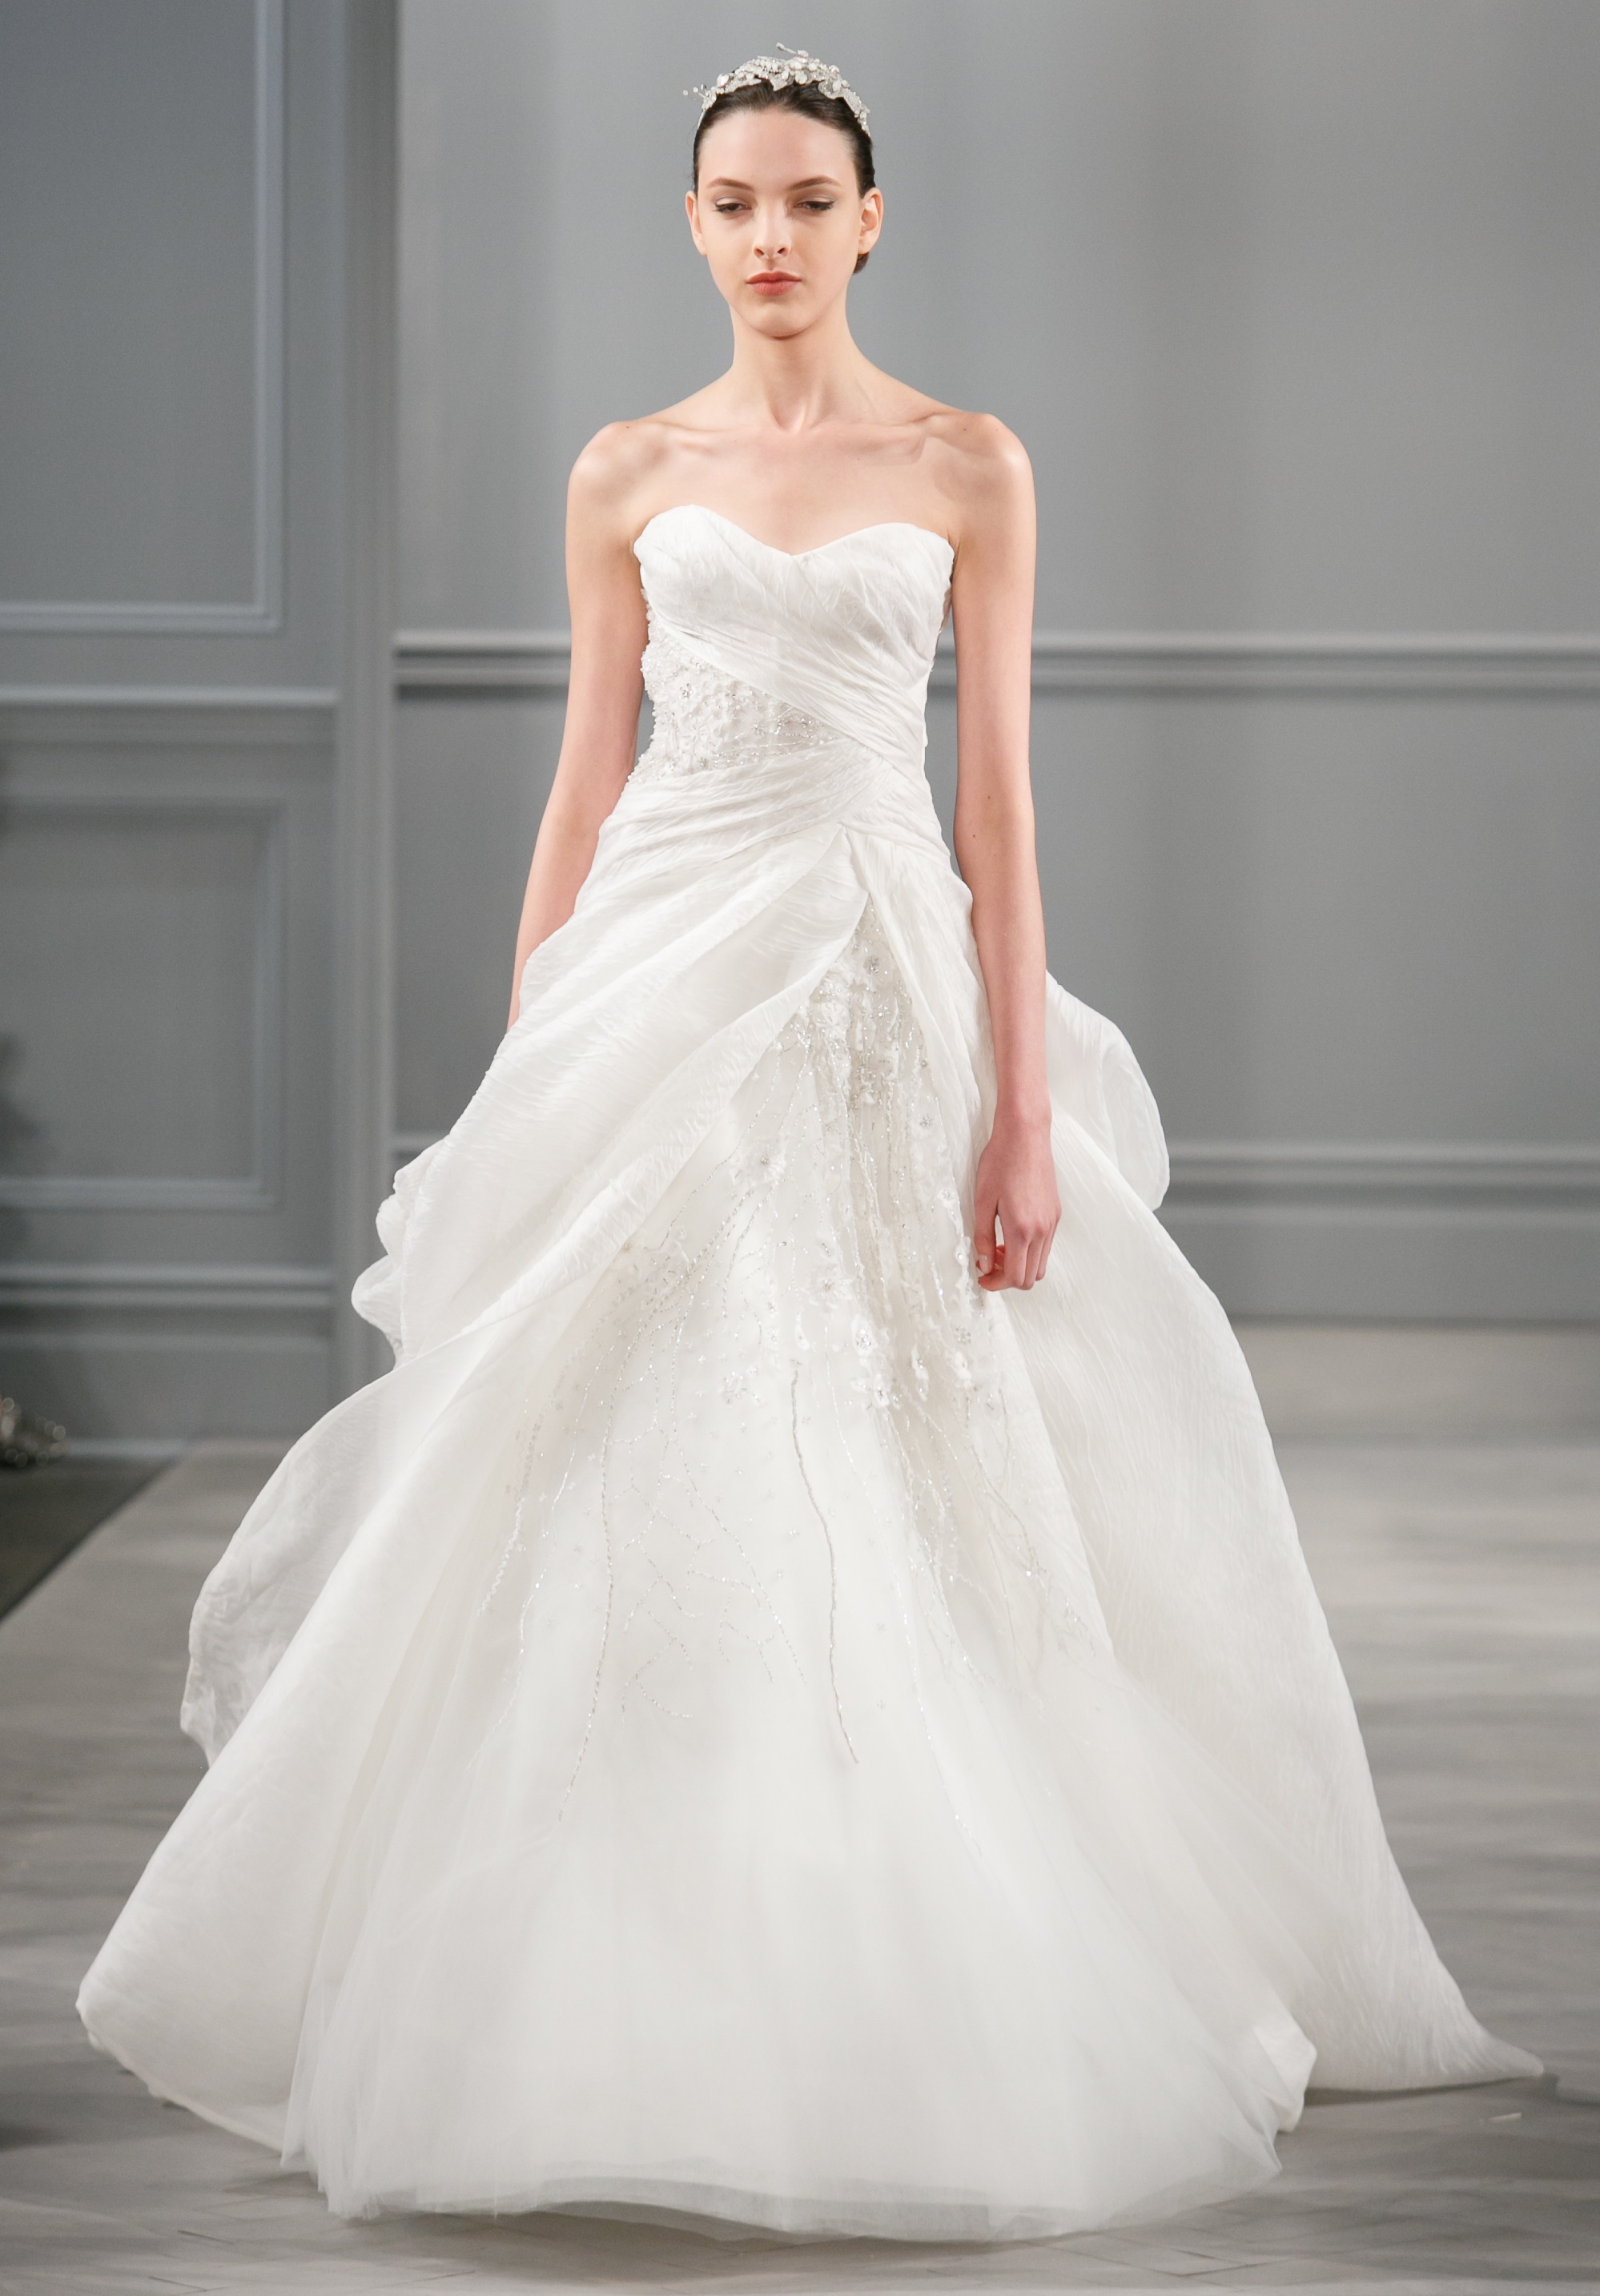 Spring 2014 wedding dress monique lhuillier bridal charade for Monique lhuillier wedding dress